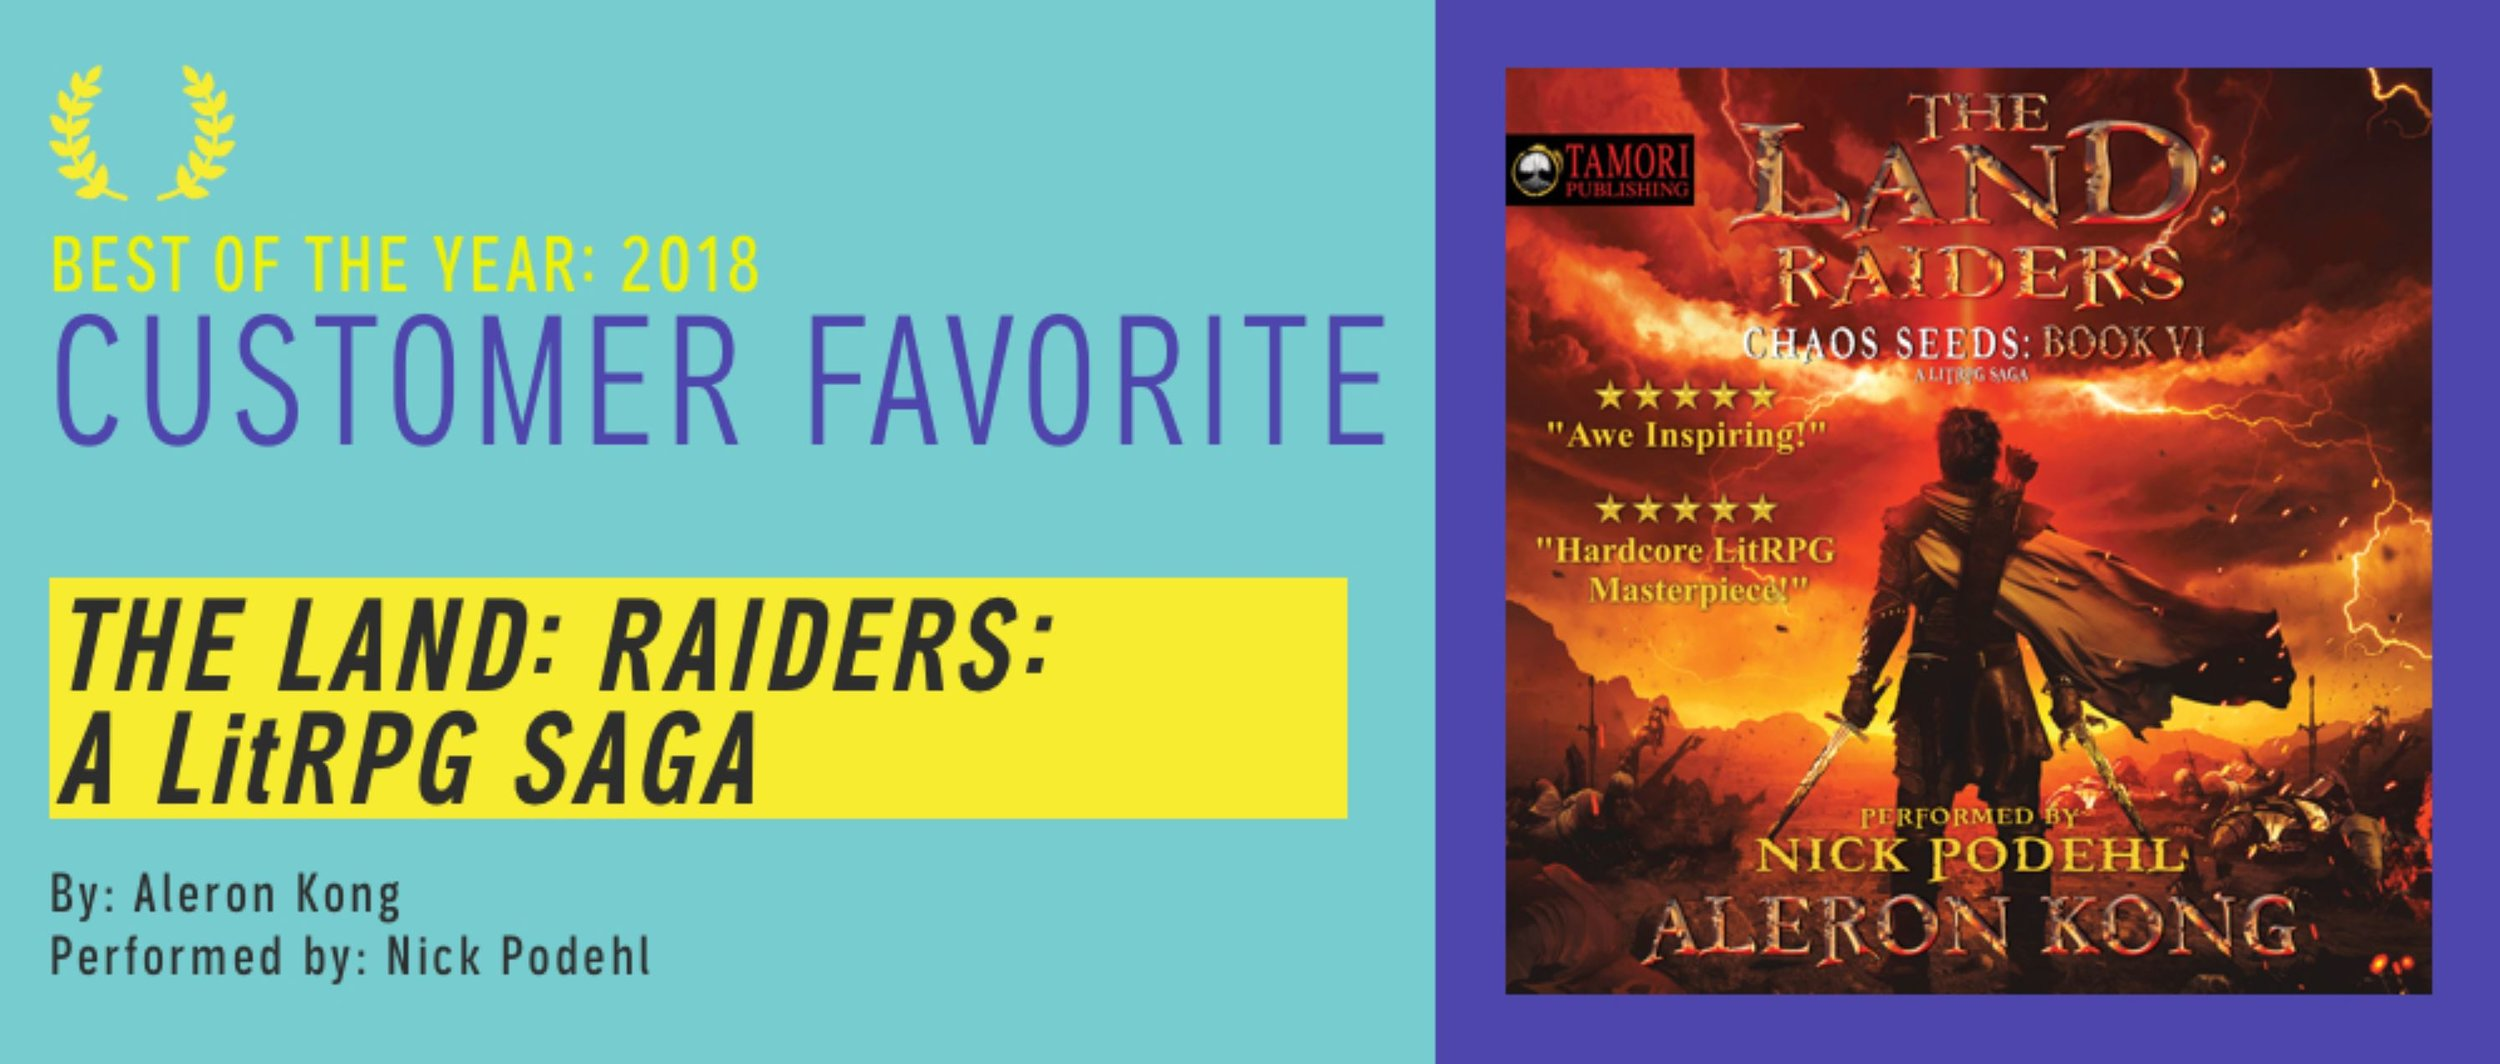 Customer Favorite Audible 2018 Book 6 Raiders.JPG